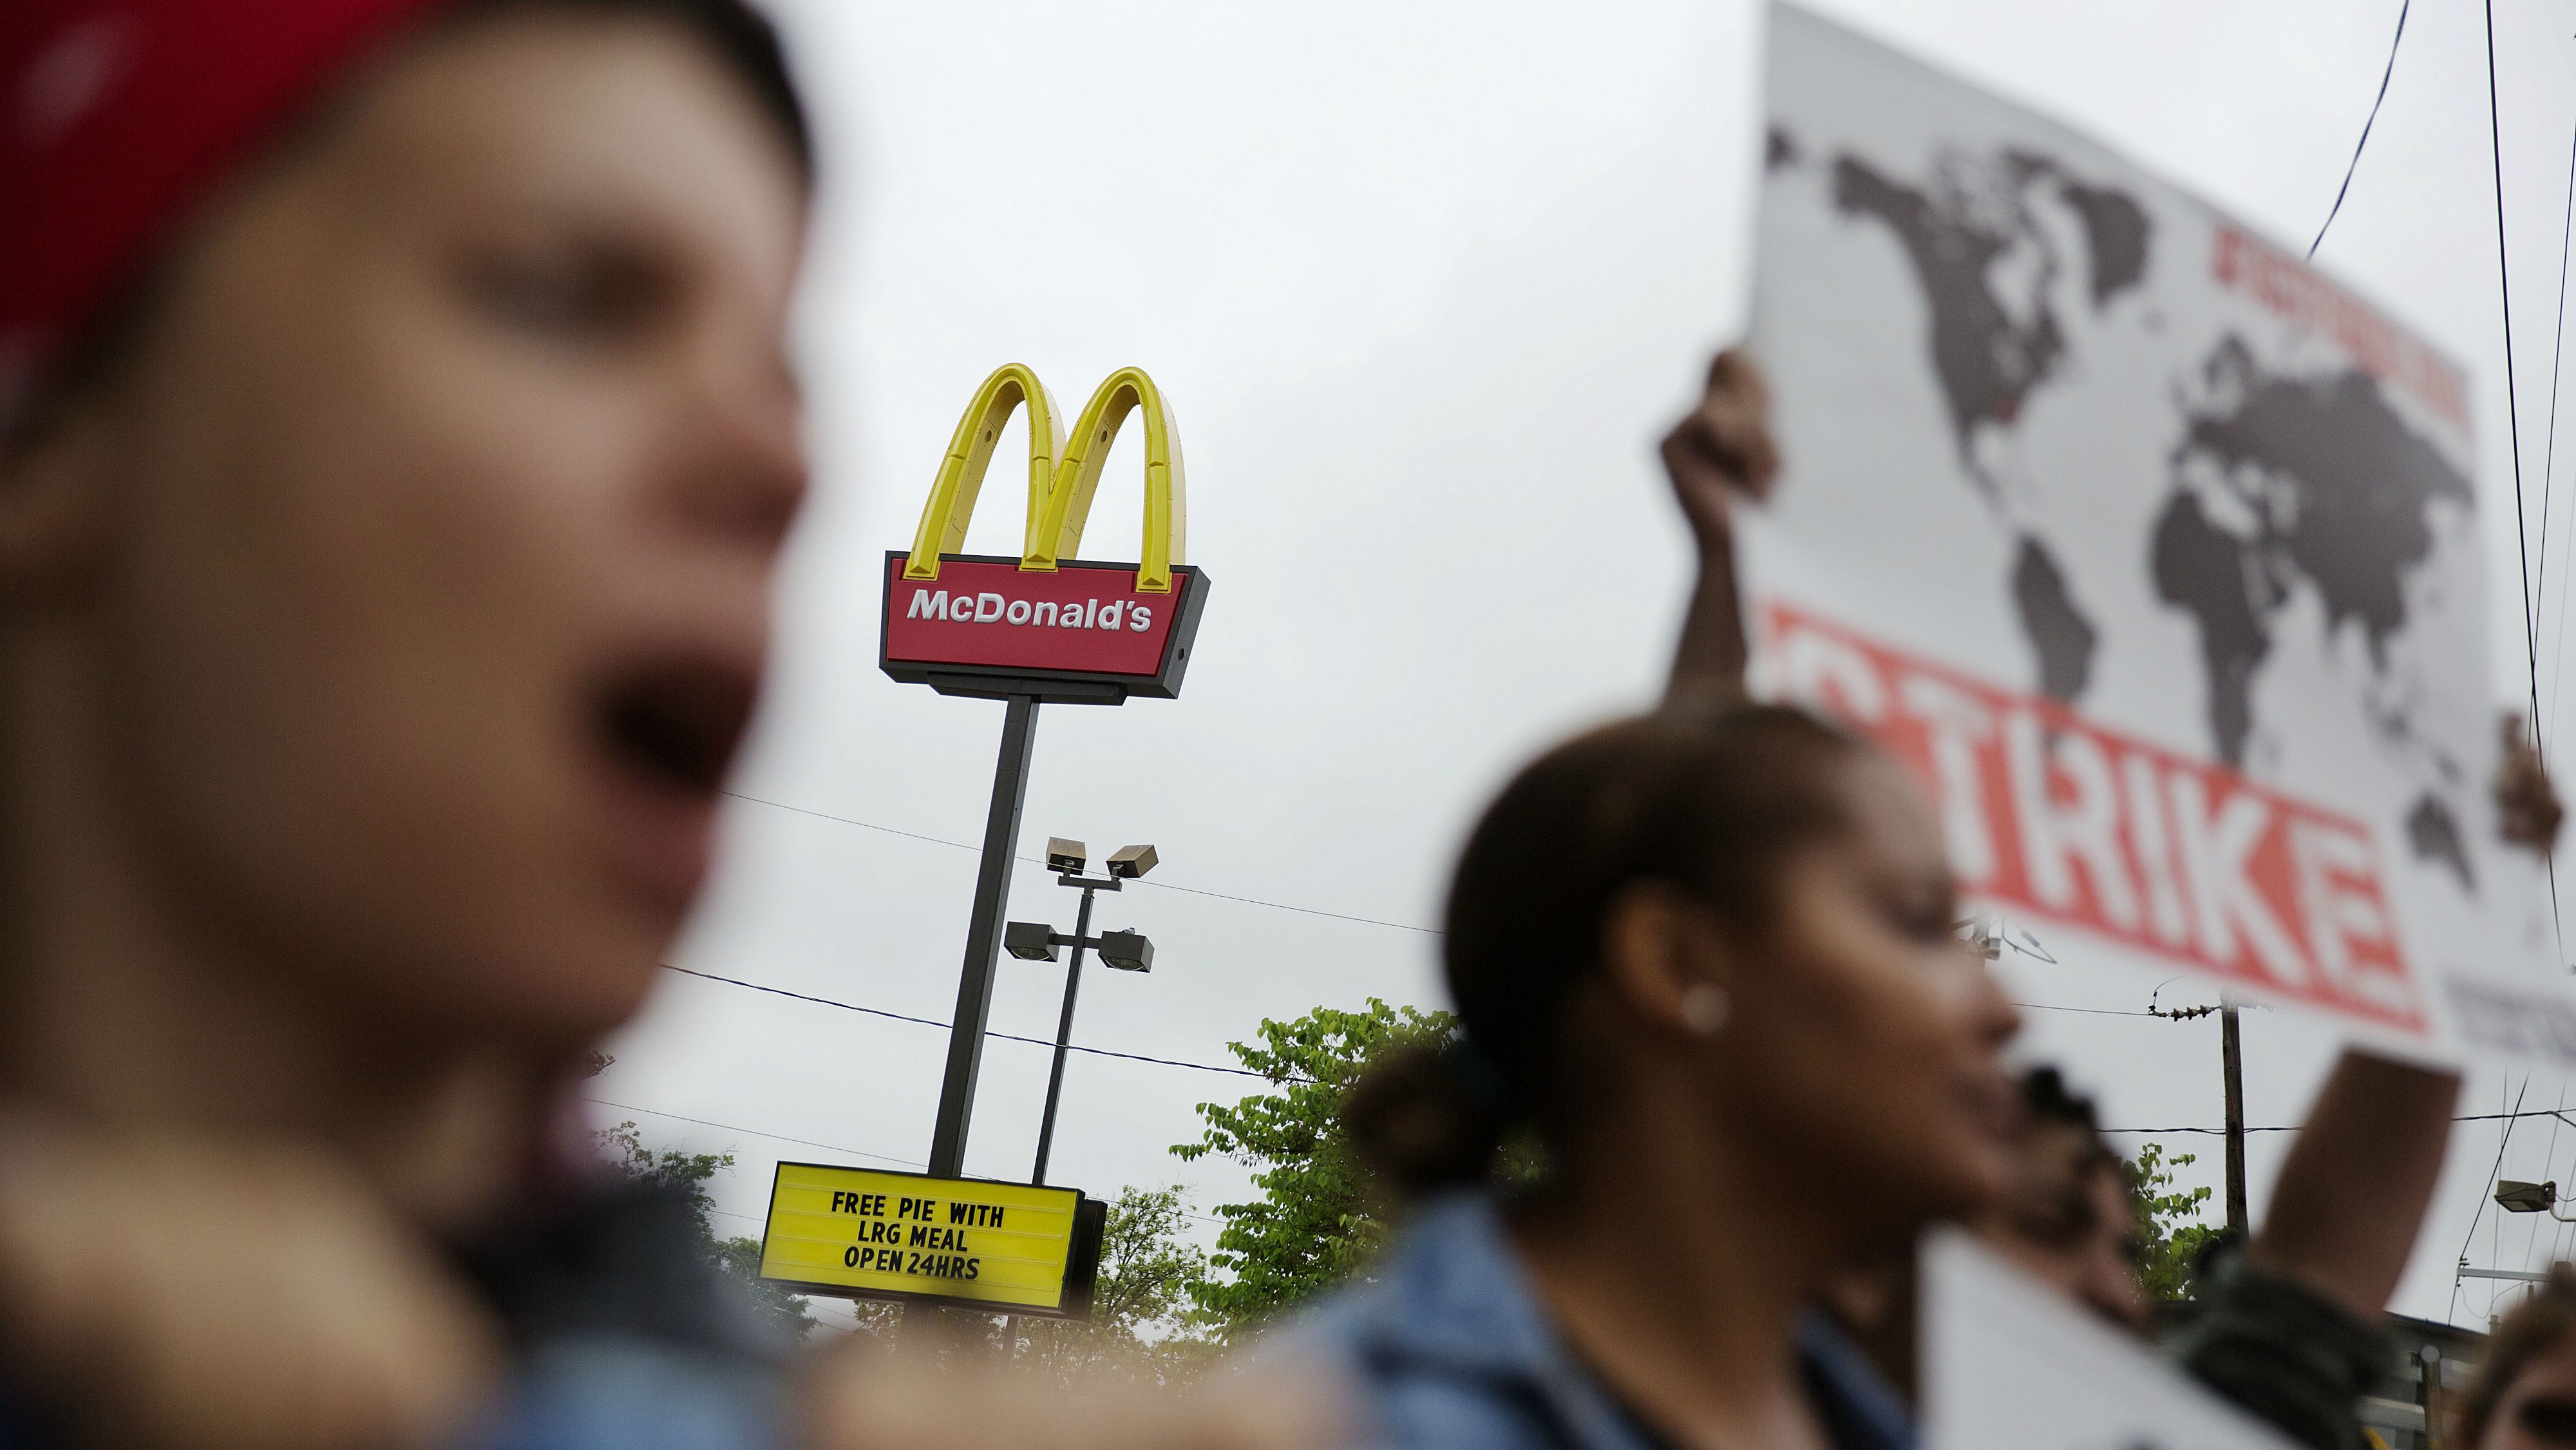 Demonstrators protest outside a McDonald's restaurant demanding better wages, Thursday, May 15, 2014, in Atlanta. Calling for higher pay and the right to form a union without retaliation, fast-food chain workers in Atlanta protested Thursday as part of a wave of strikes and protests in 150 cities across the U.S. and 33 additional countries on six continents. (AP Photo/David Goldman)